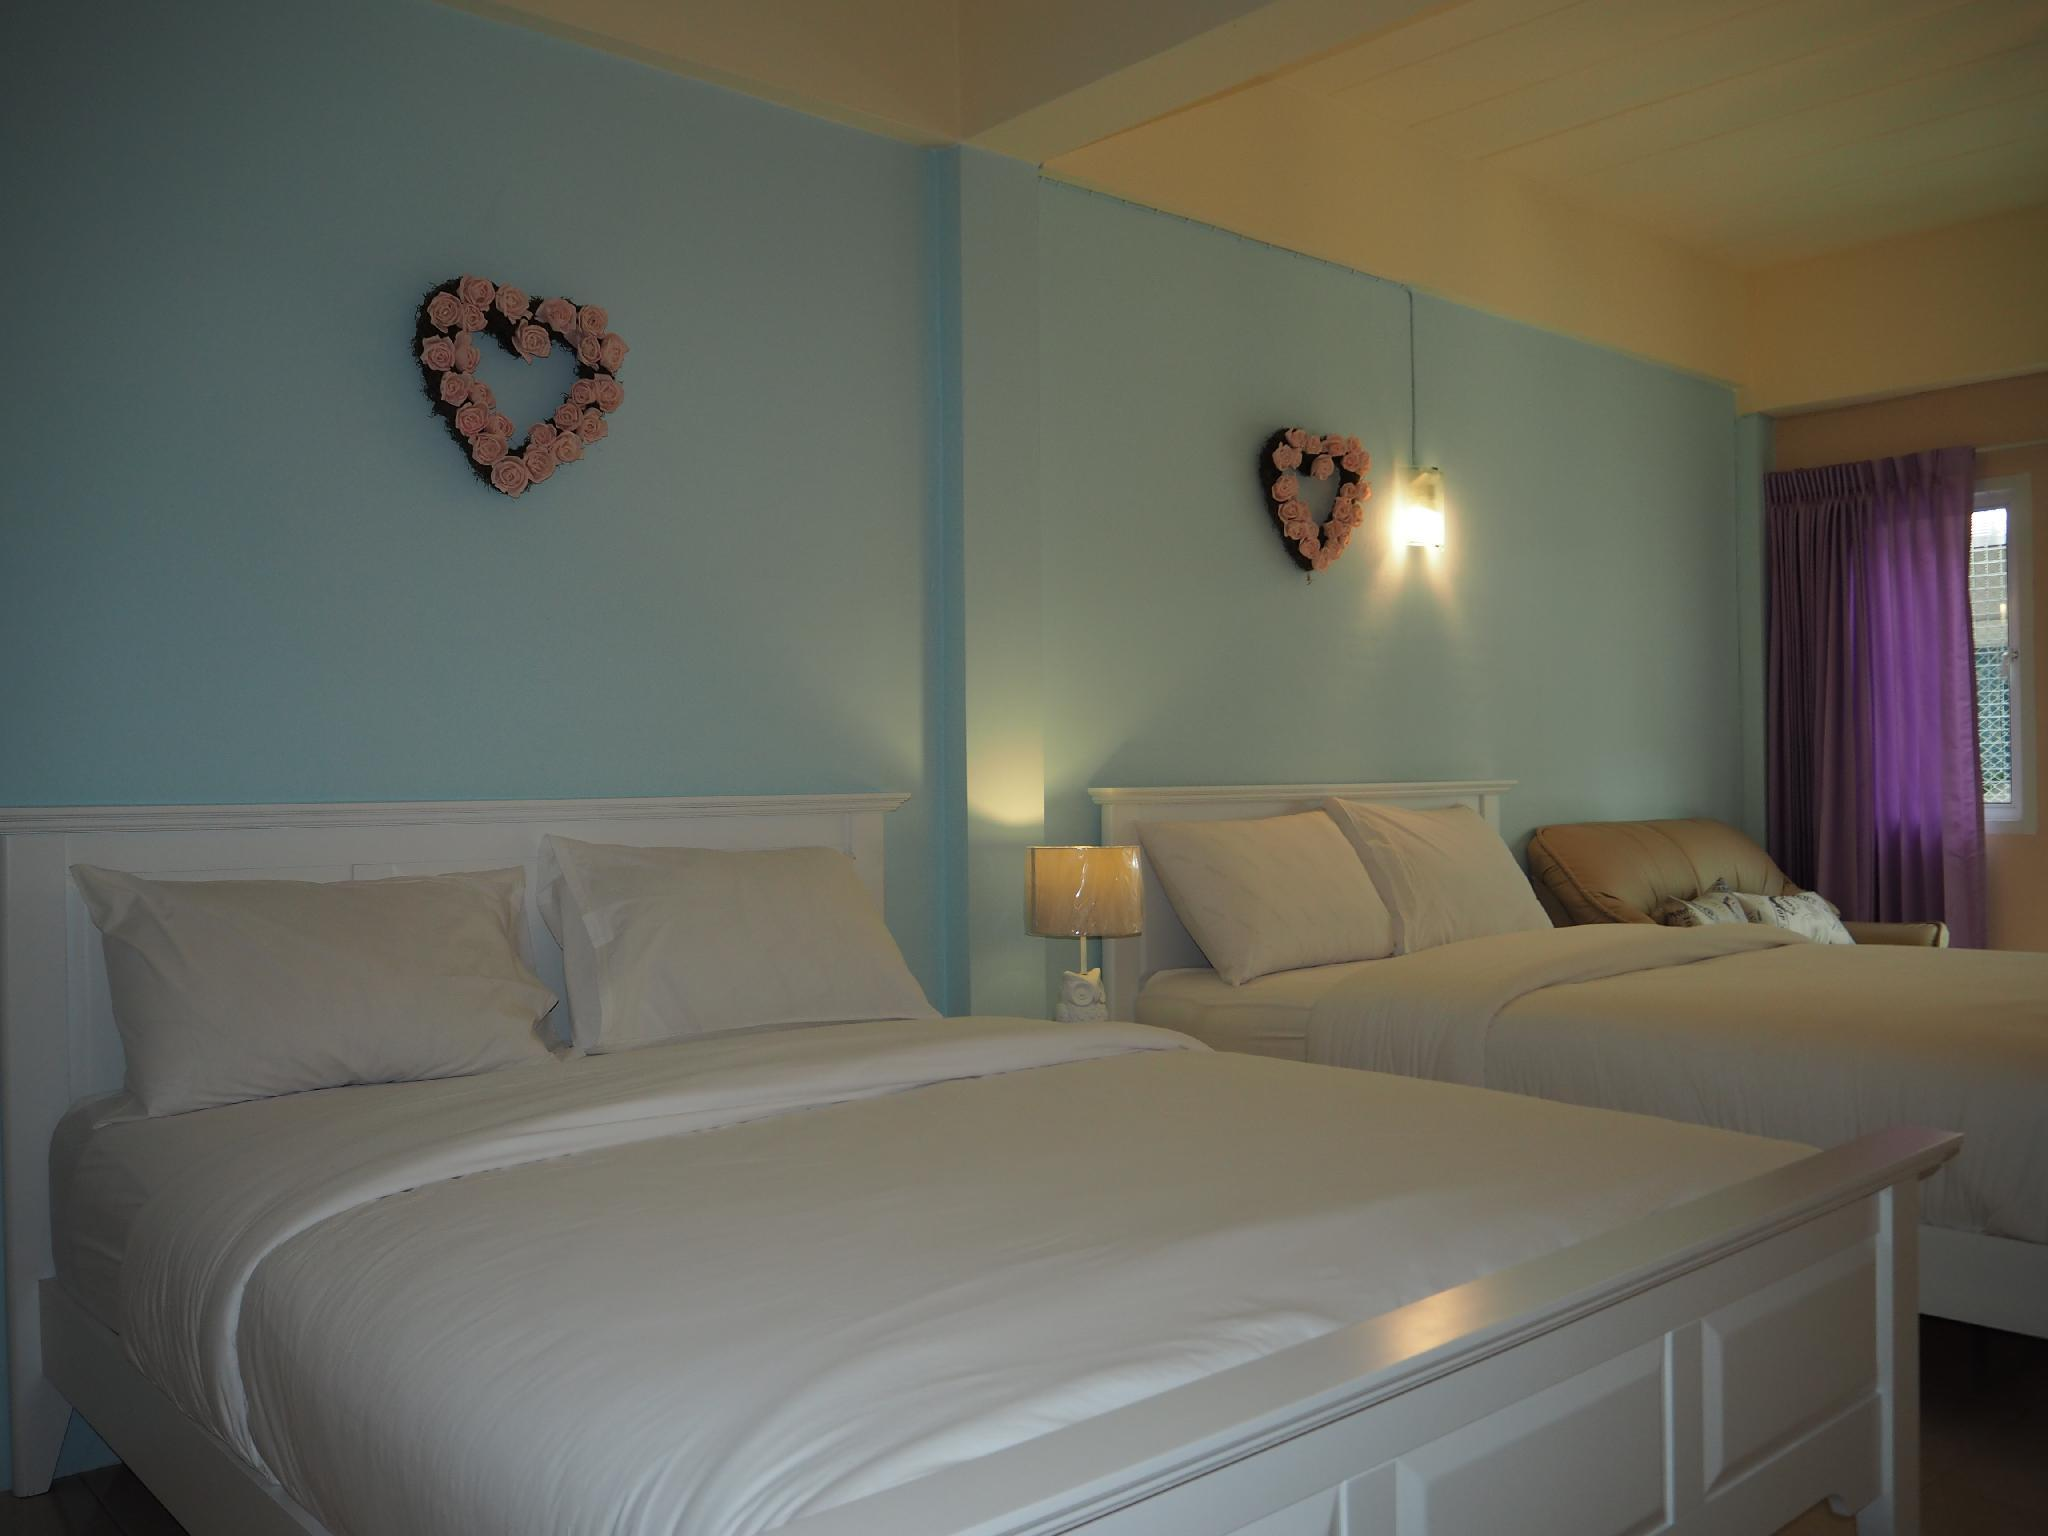 Camera per Famiglie con 2 Letti Matrimoniali (Family Room with 2 Double Beds)